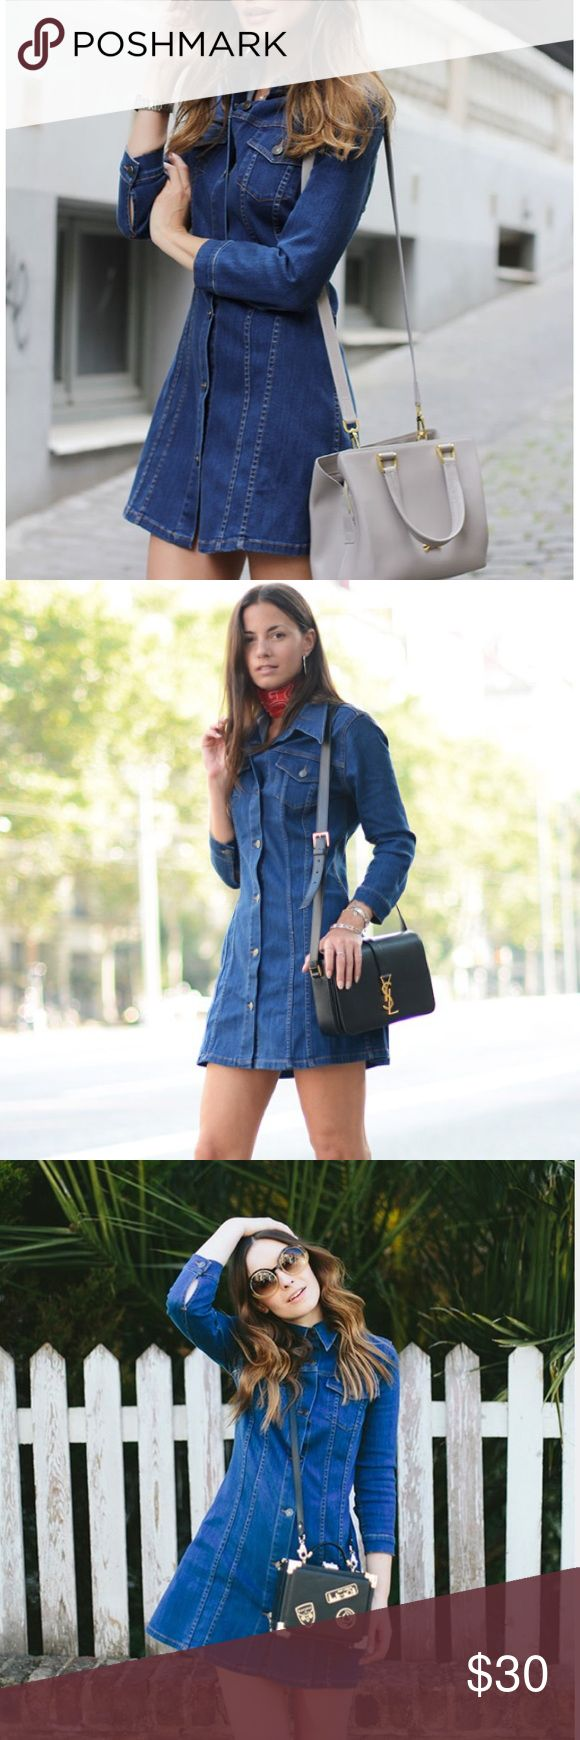 Zara long sleeve denim mini dress - New w/tags Brand new with tags Zara medium wash denim mini dress. Perfect for spring or wear with tights in the fall and winter. Has slight stretch and the denim is thicker than most denim dresses. Fits like a dream. Zara Dresses Mini